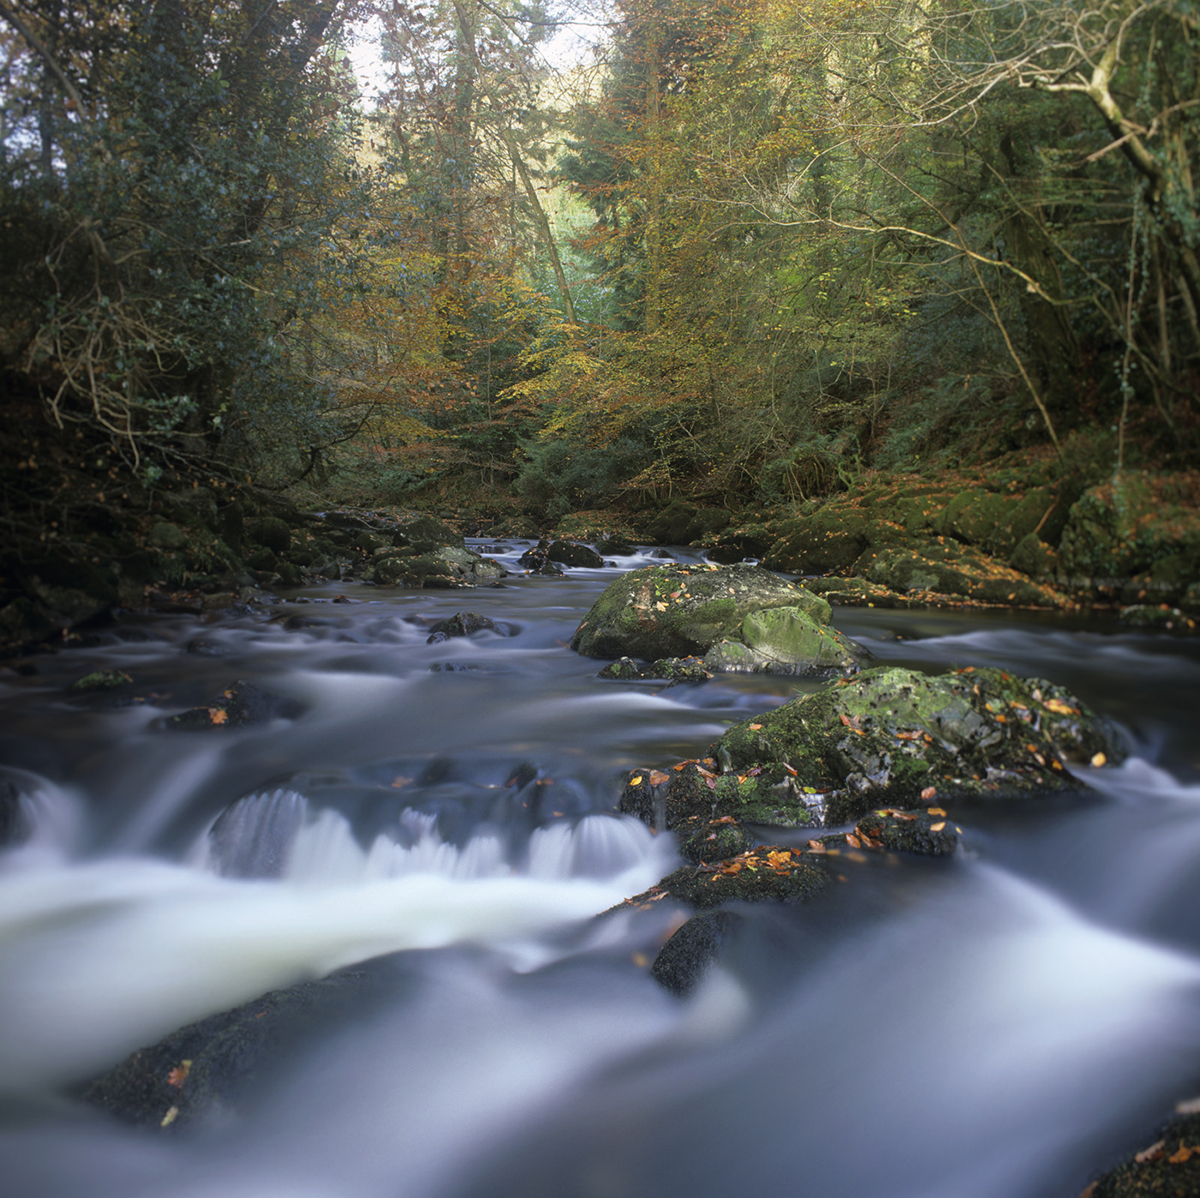 022 Rivers & Woodland_ErmeNov09a